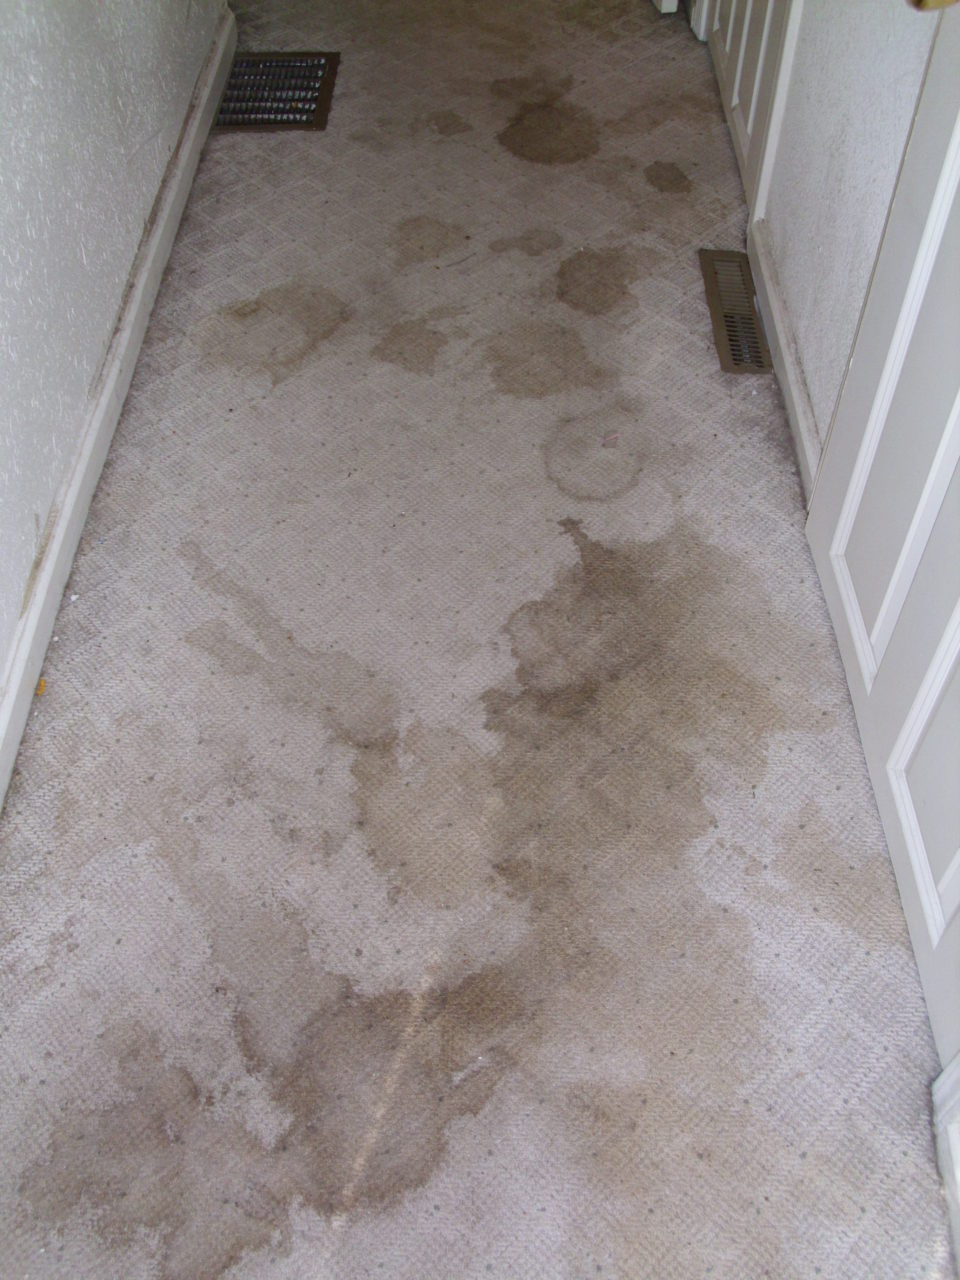 hallway with grungy stained carpet Before & after photos